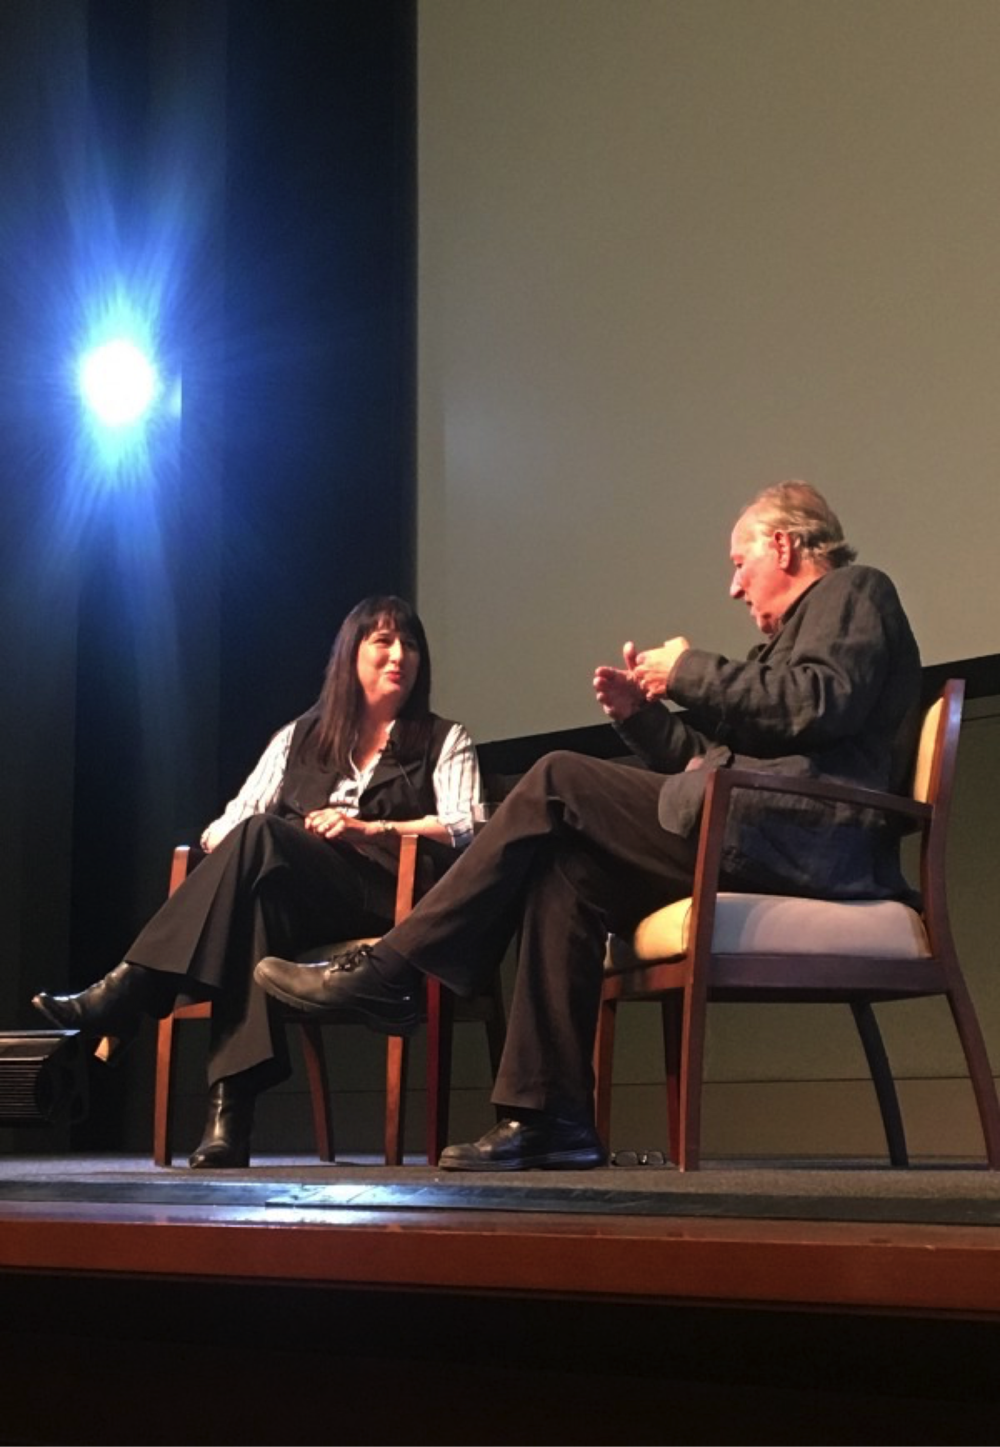 Patrice Petro and Werner Herzog engaged in a lively discussion about his experiences directing Nosferatu the Vampyre.